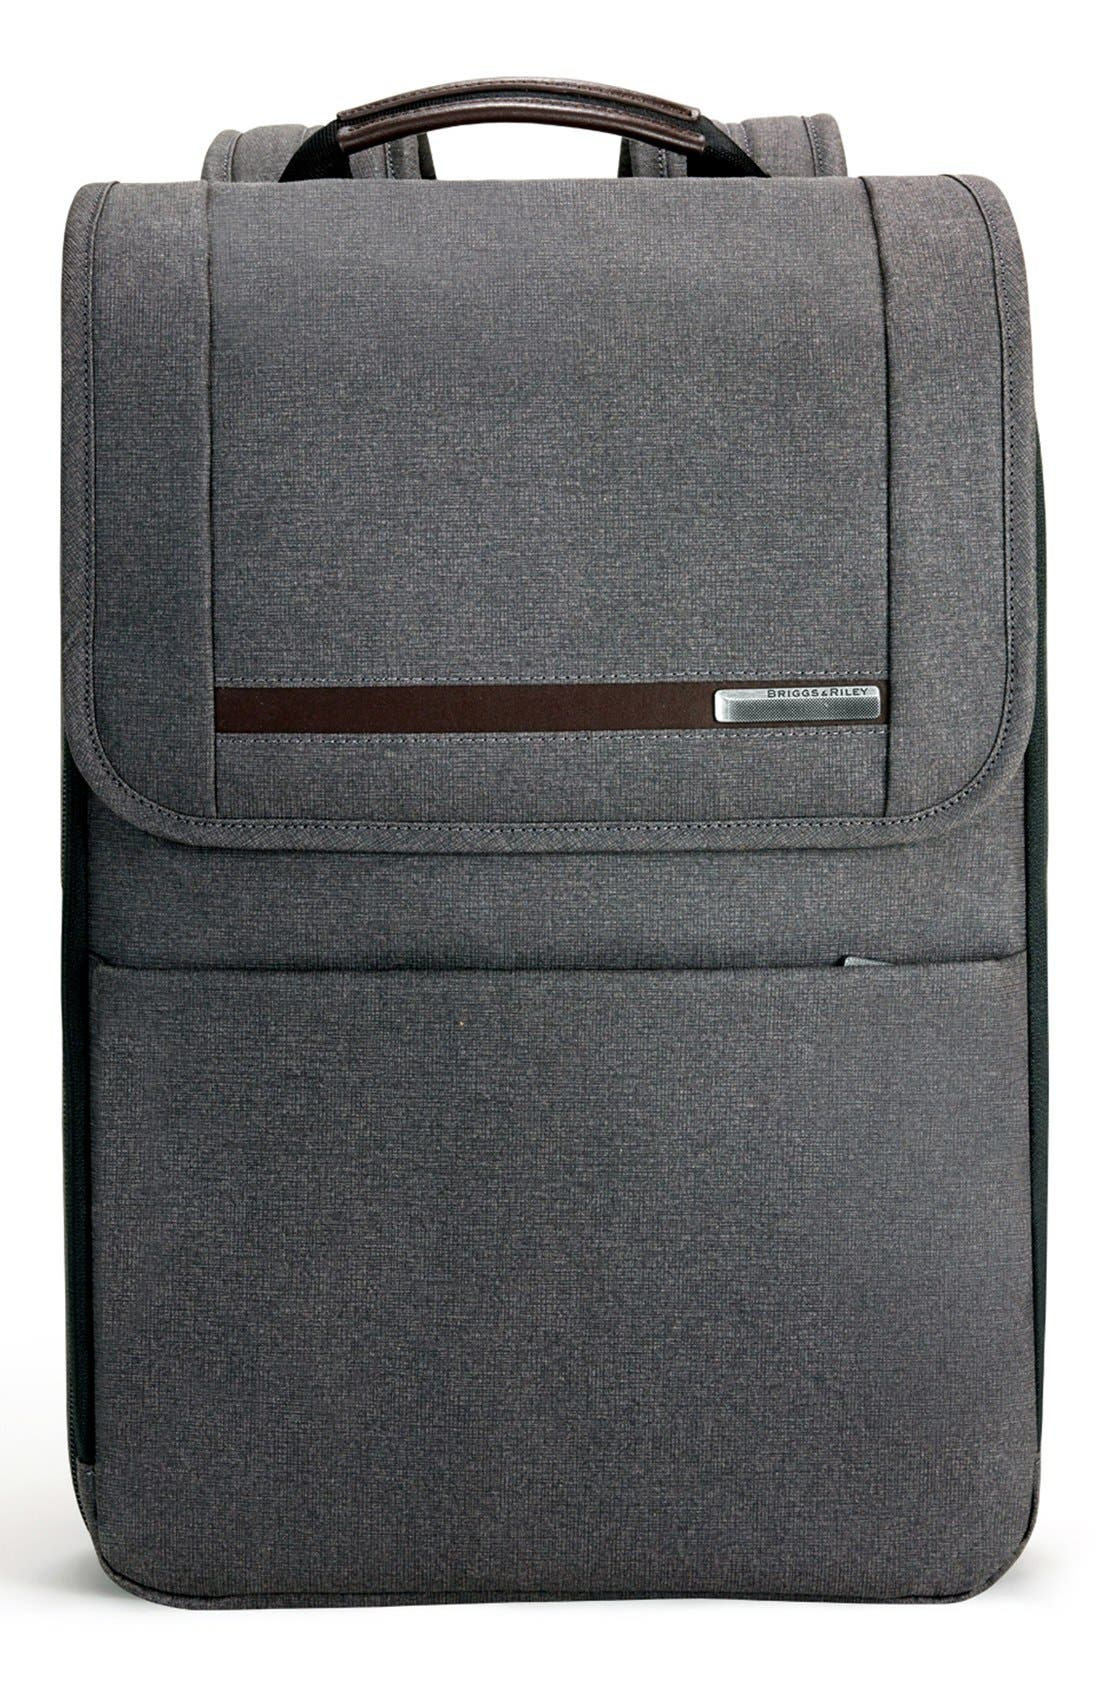 Main Image - Briggs & Riley 'Kinzie Street' Expandable Backpack